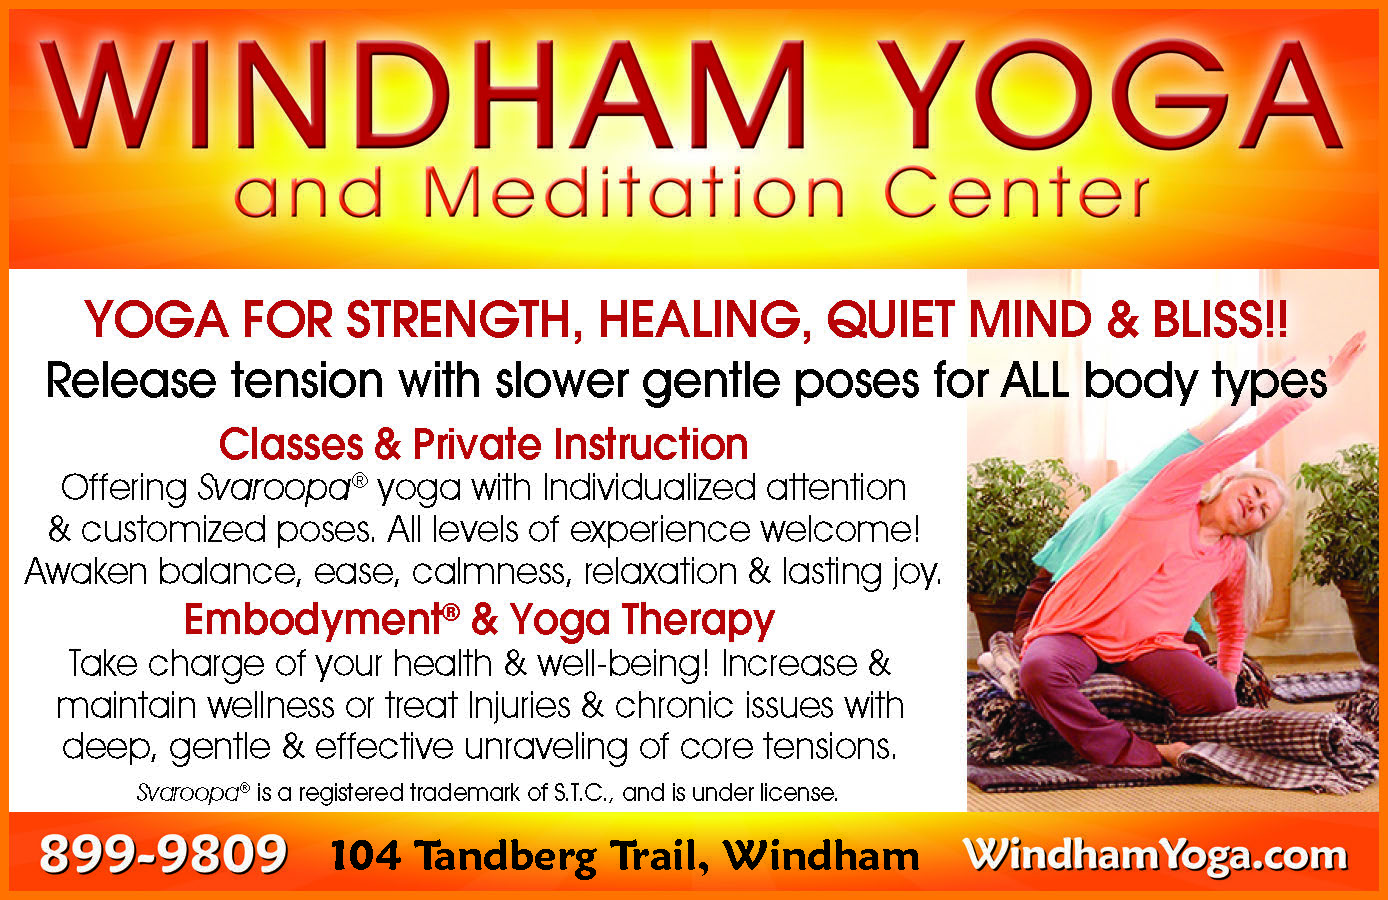 http://www.windhamyoga.com/